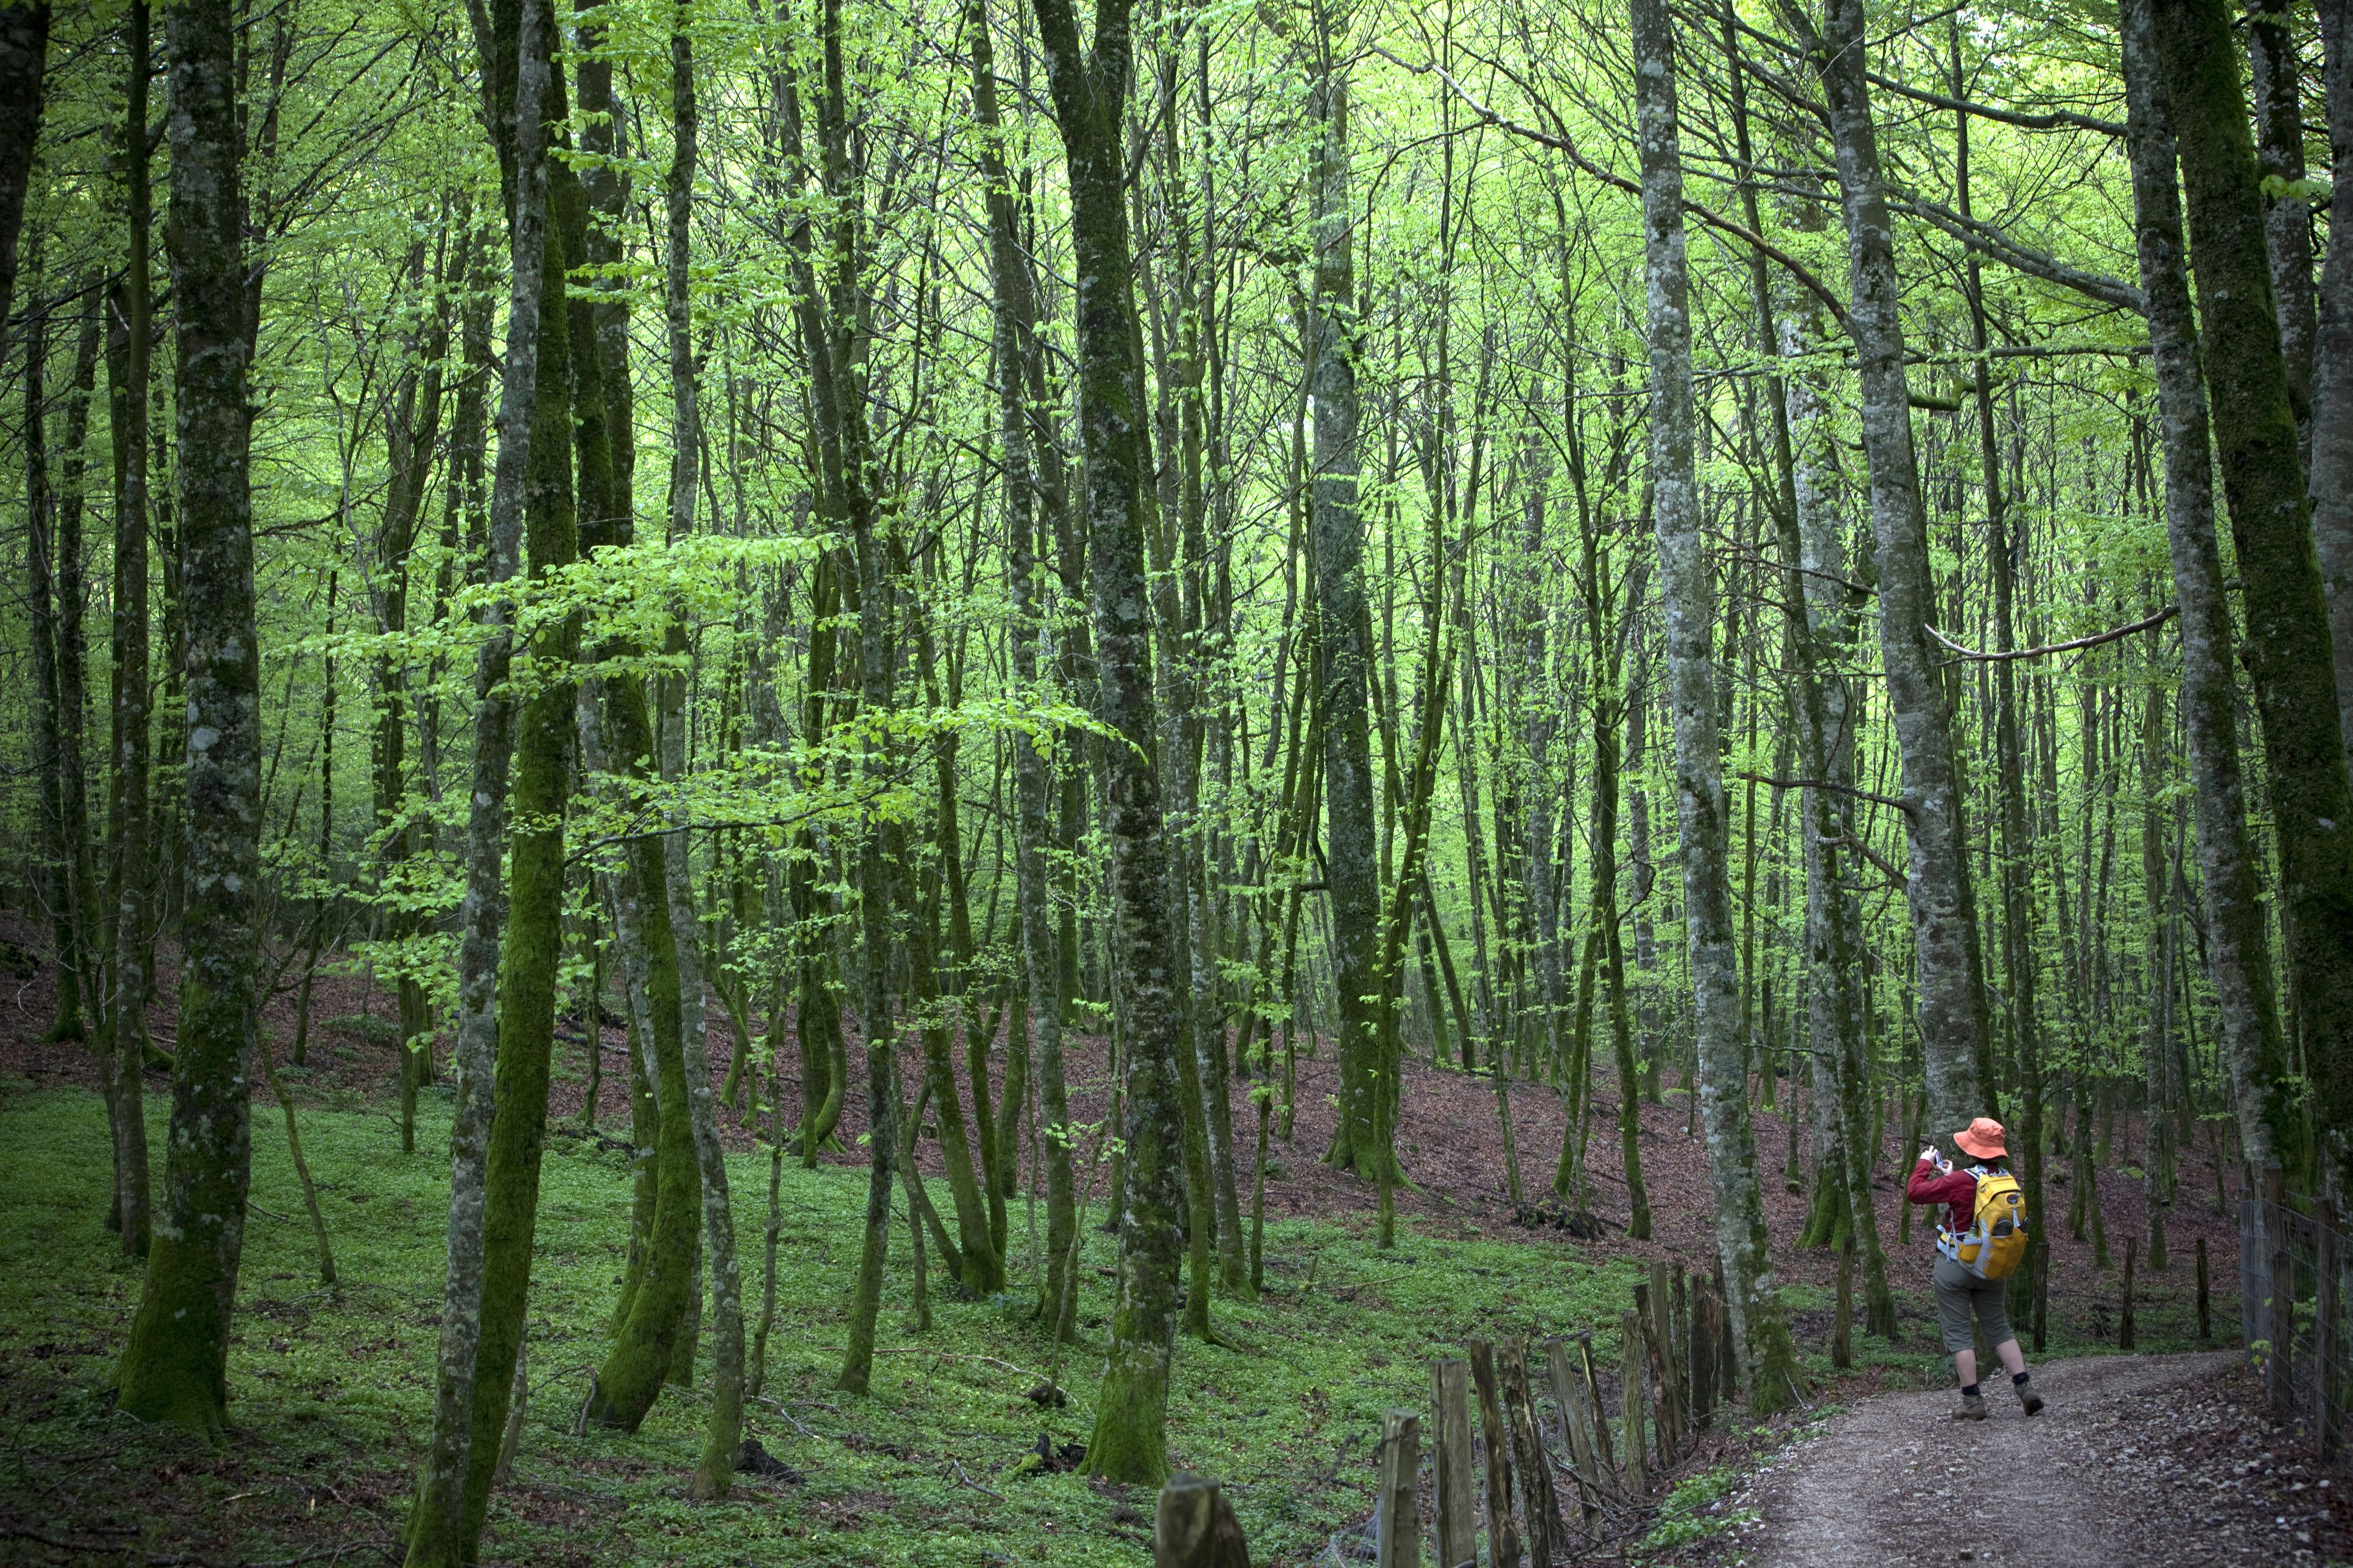 Forests on the Camino de Santiago, Spain